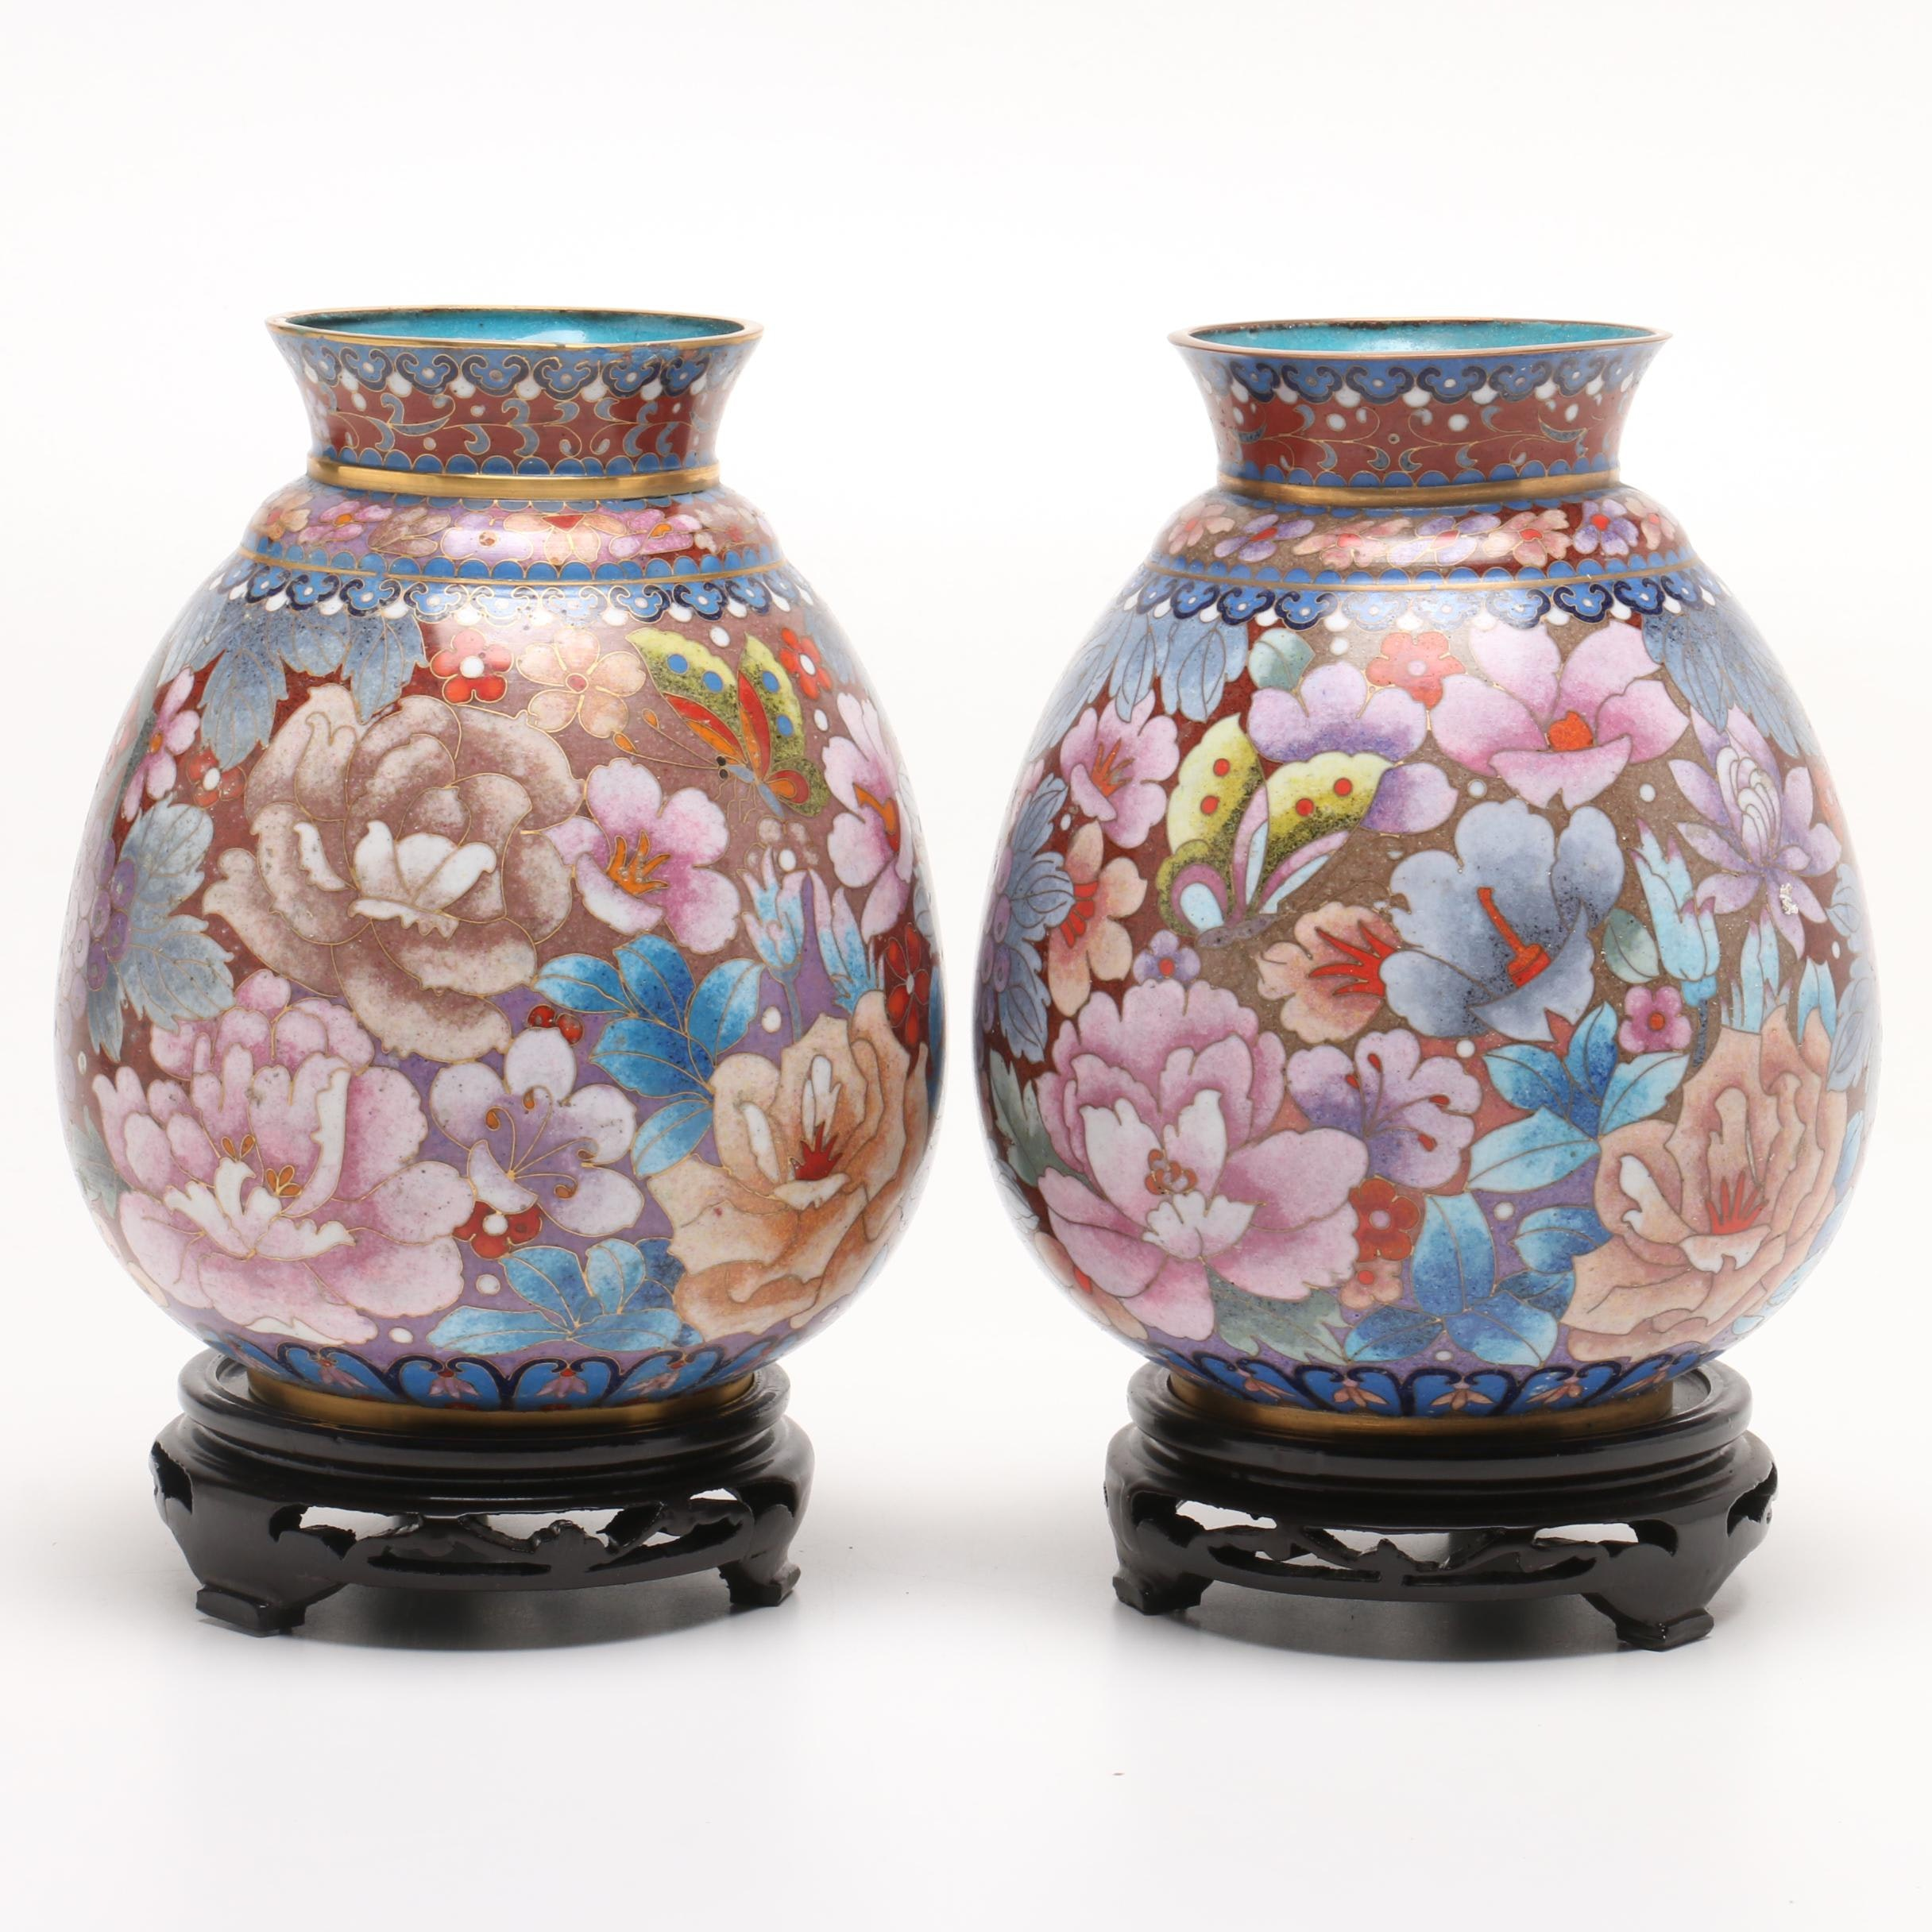 Chinese Cloisonné Vases